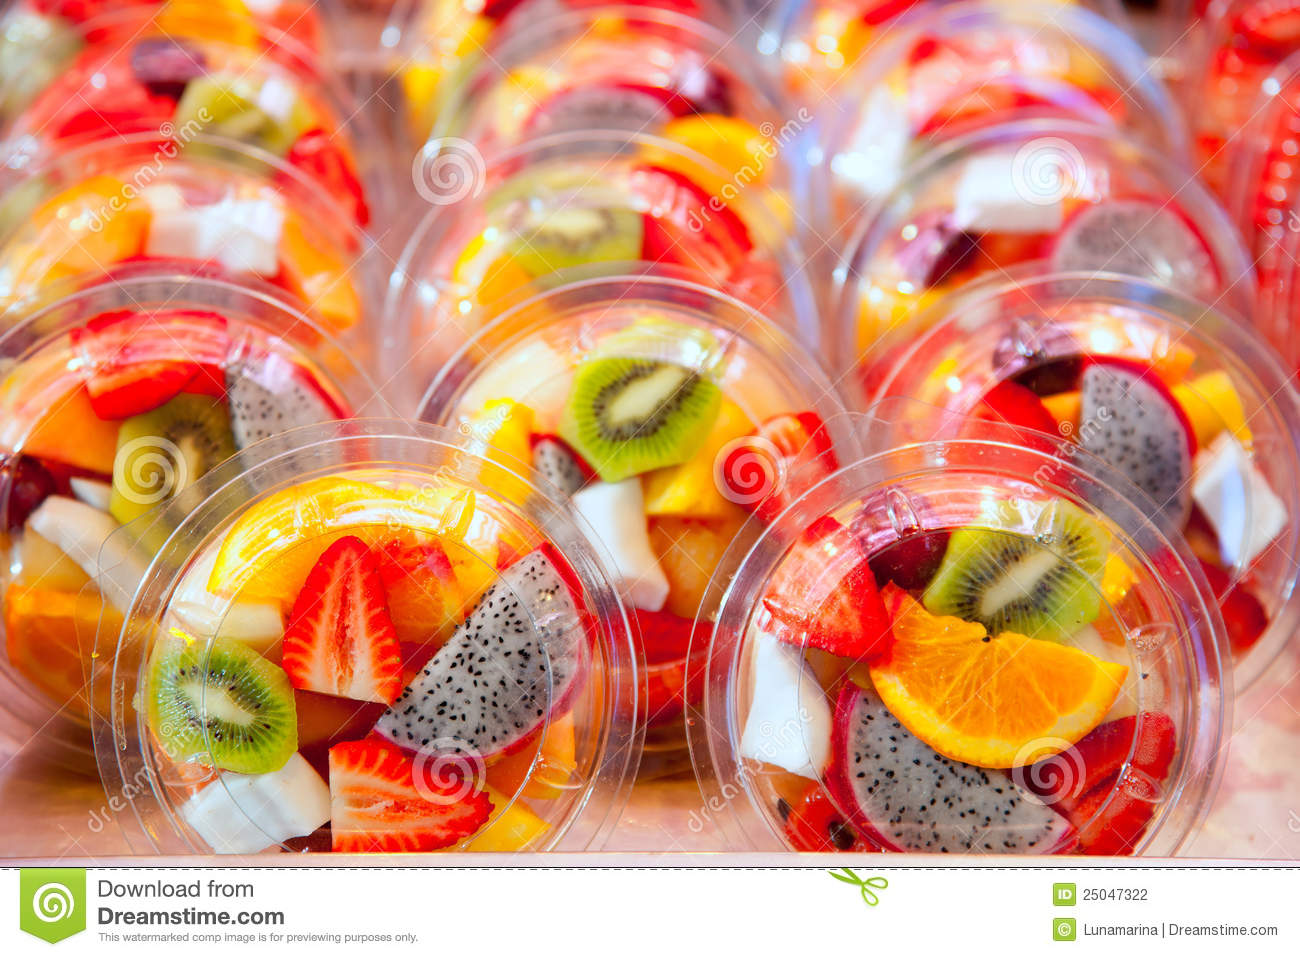 Colorful Fruit Salad In Transparent Glasses Stock ...